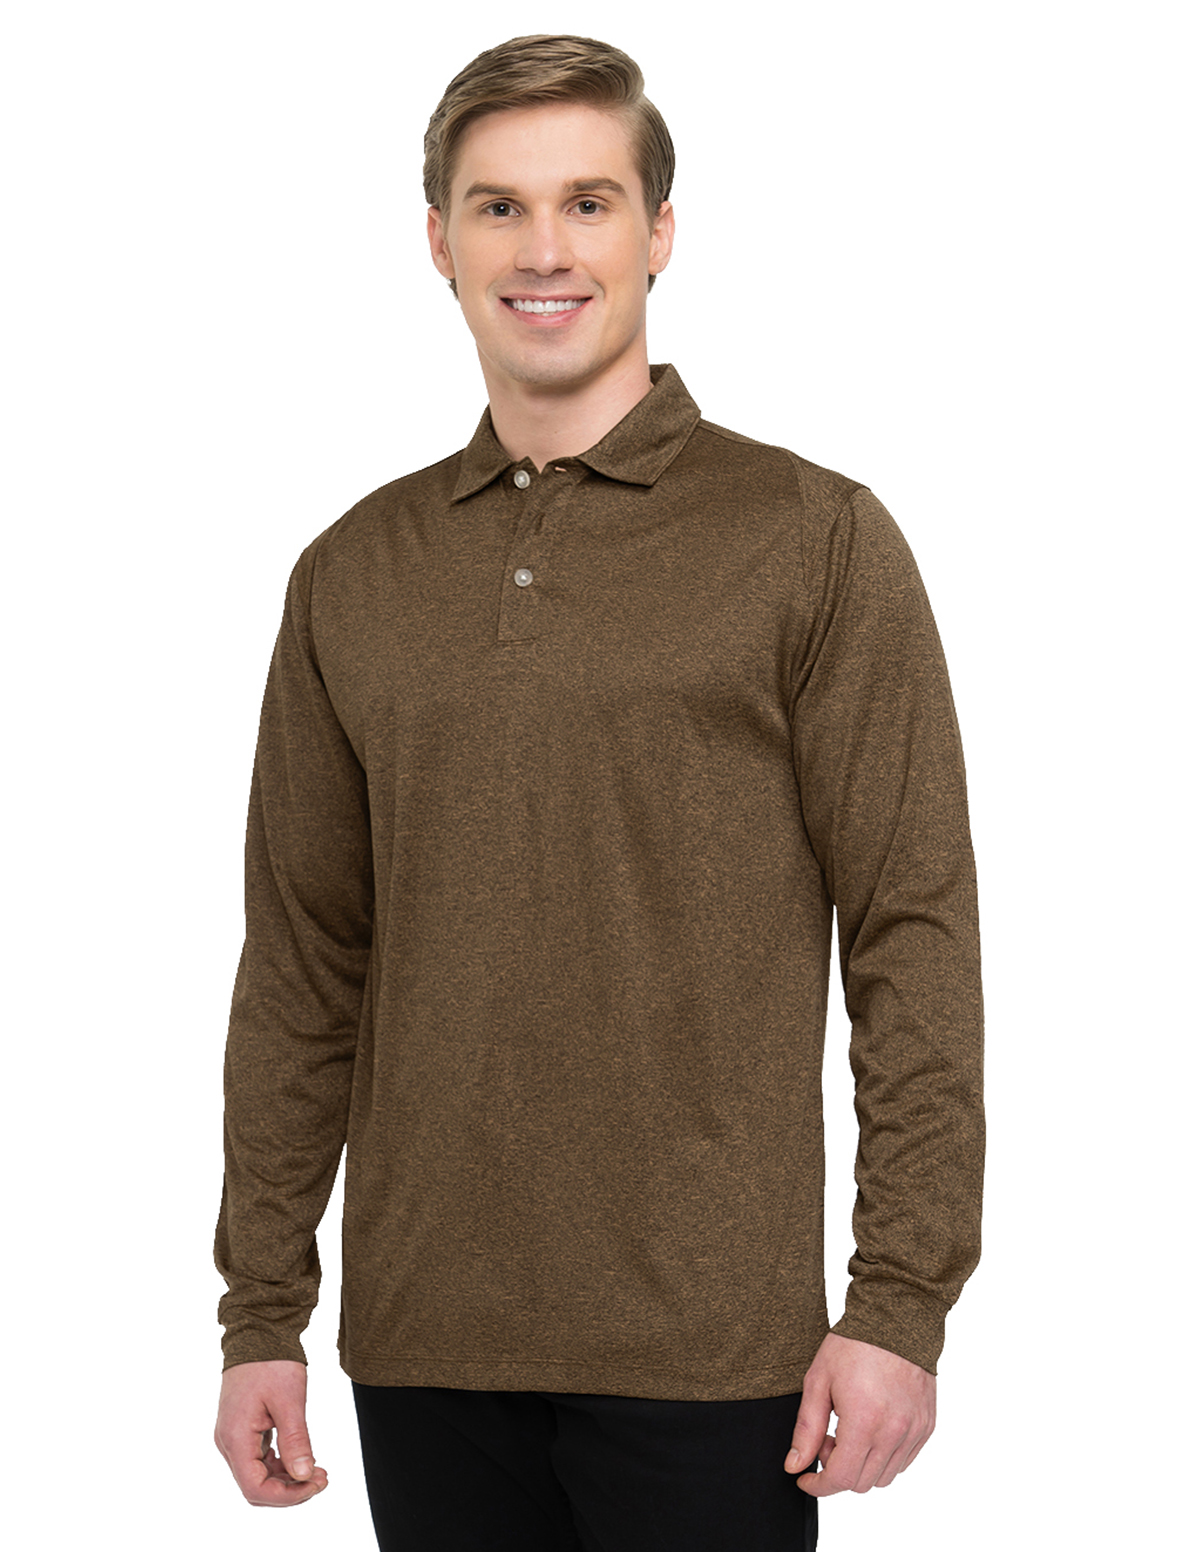 Tri-Mountain Gold K209LS - Gallant Long Sleeve Men's Polo